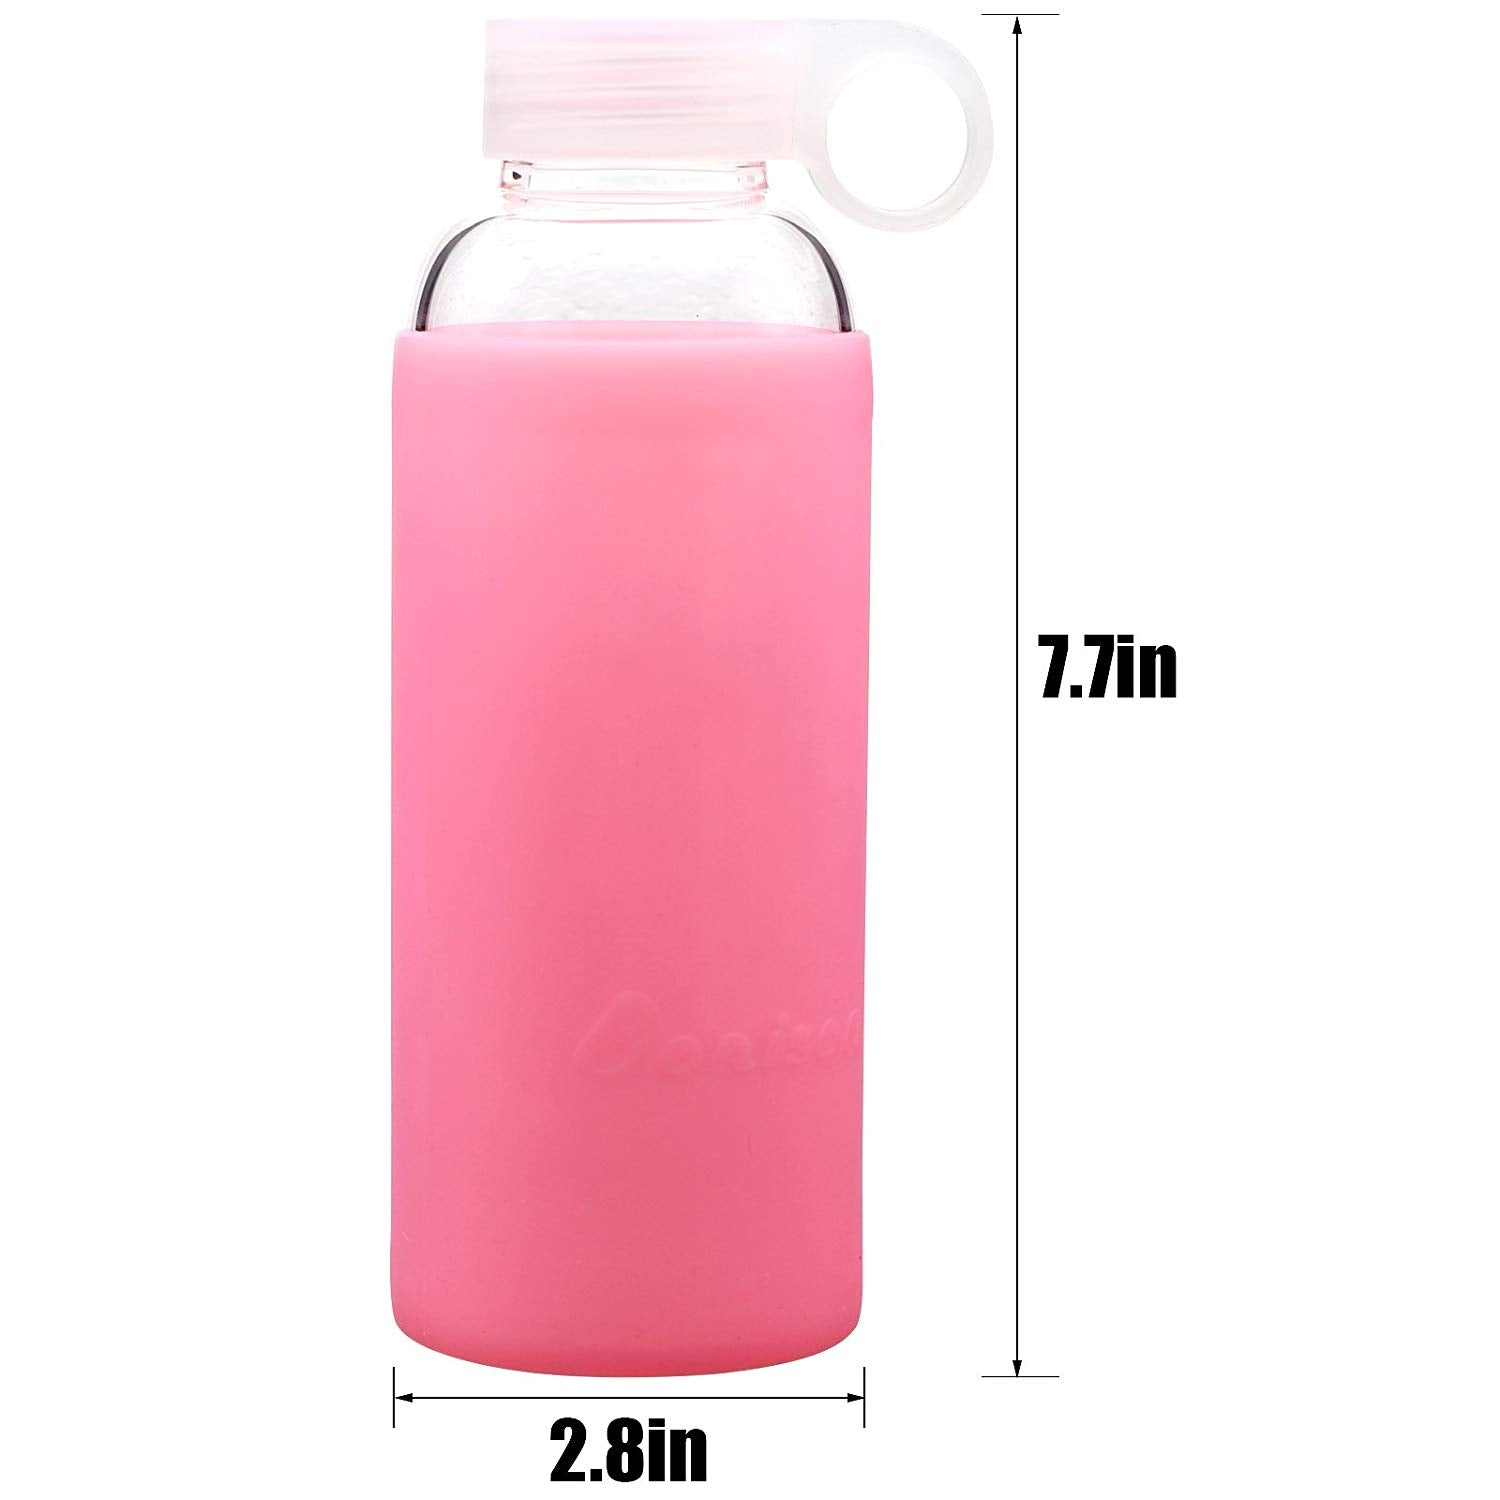 Bonison Jelly Glass Bottle, Borosilicate Glass Bottle with Pink Silicone Protective Sleeve, Perfect for Travel, Office, Home, Two Bonus Gifts of Cleaning Brush and Cloth Glass Wiper